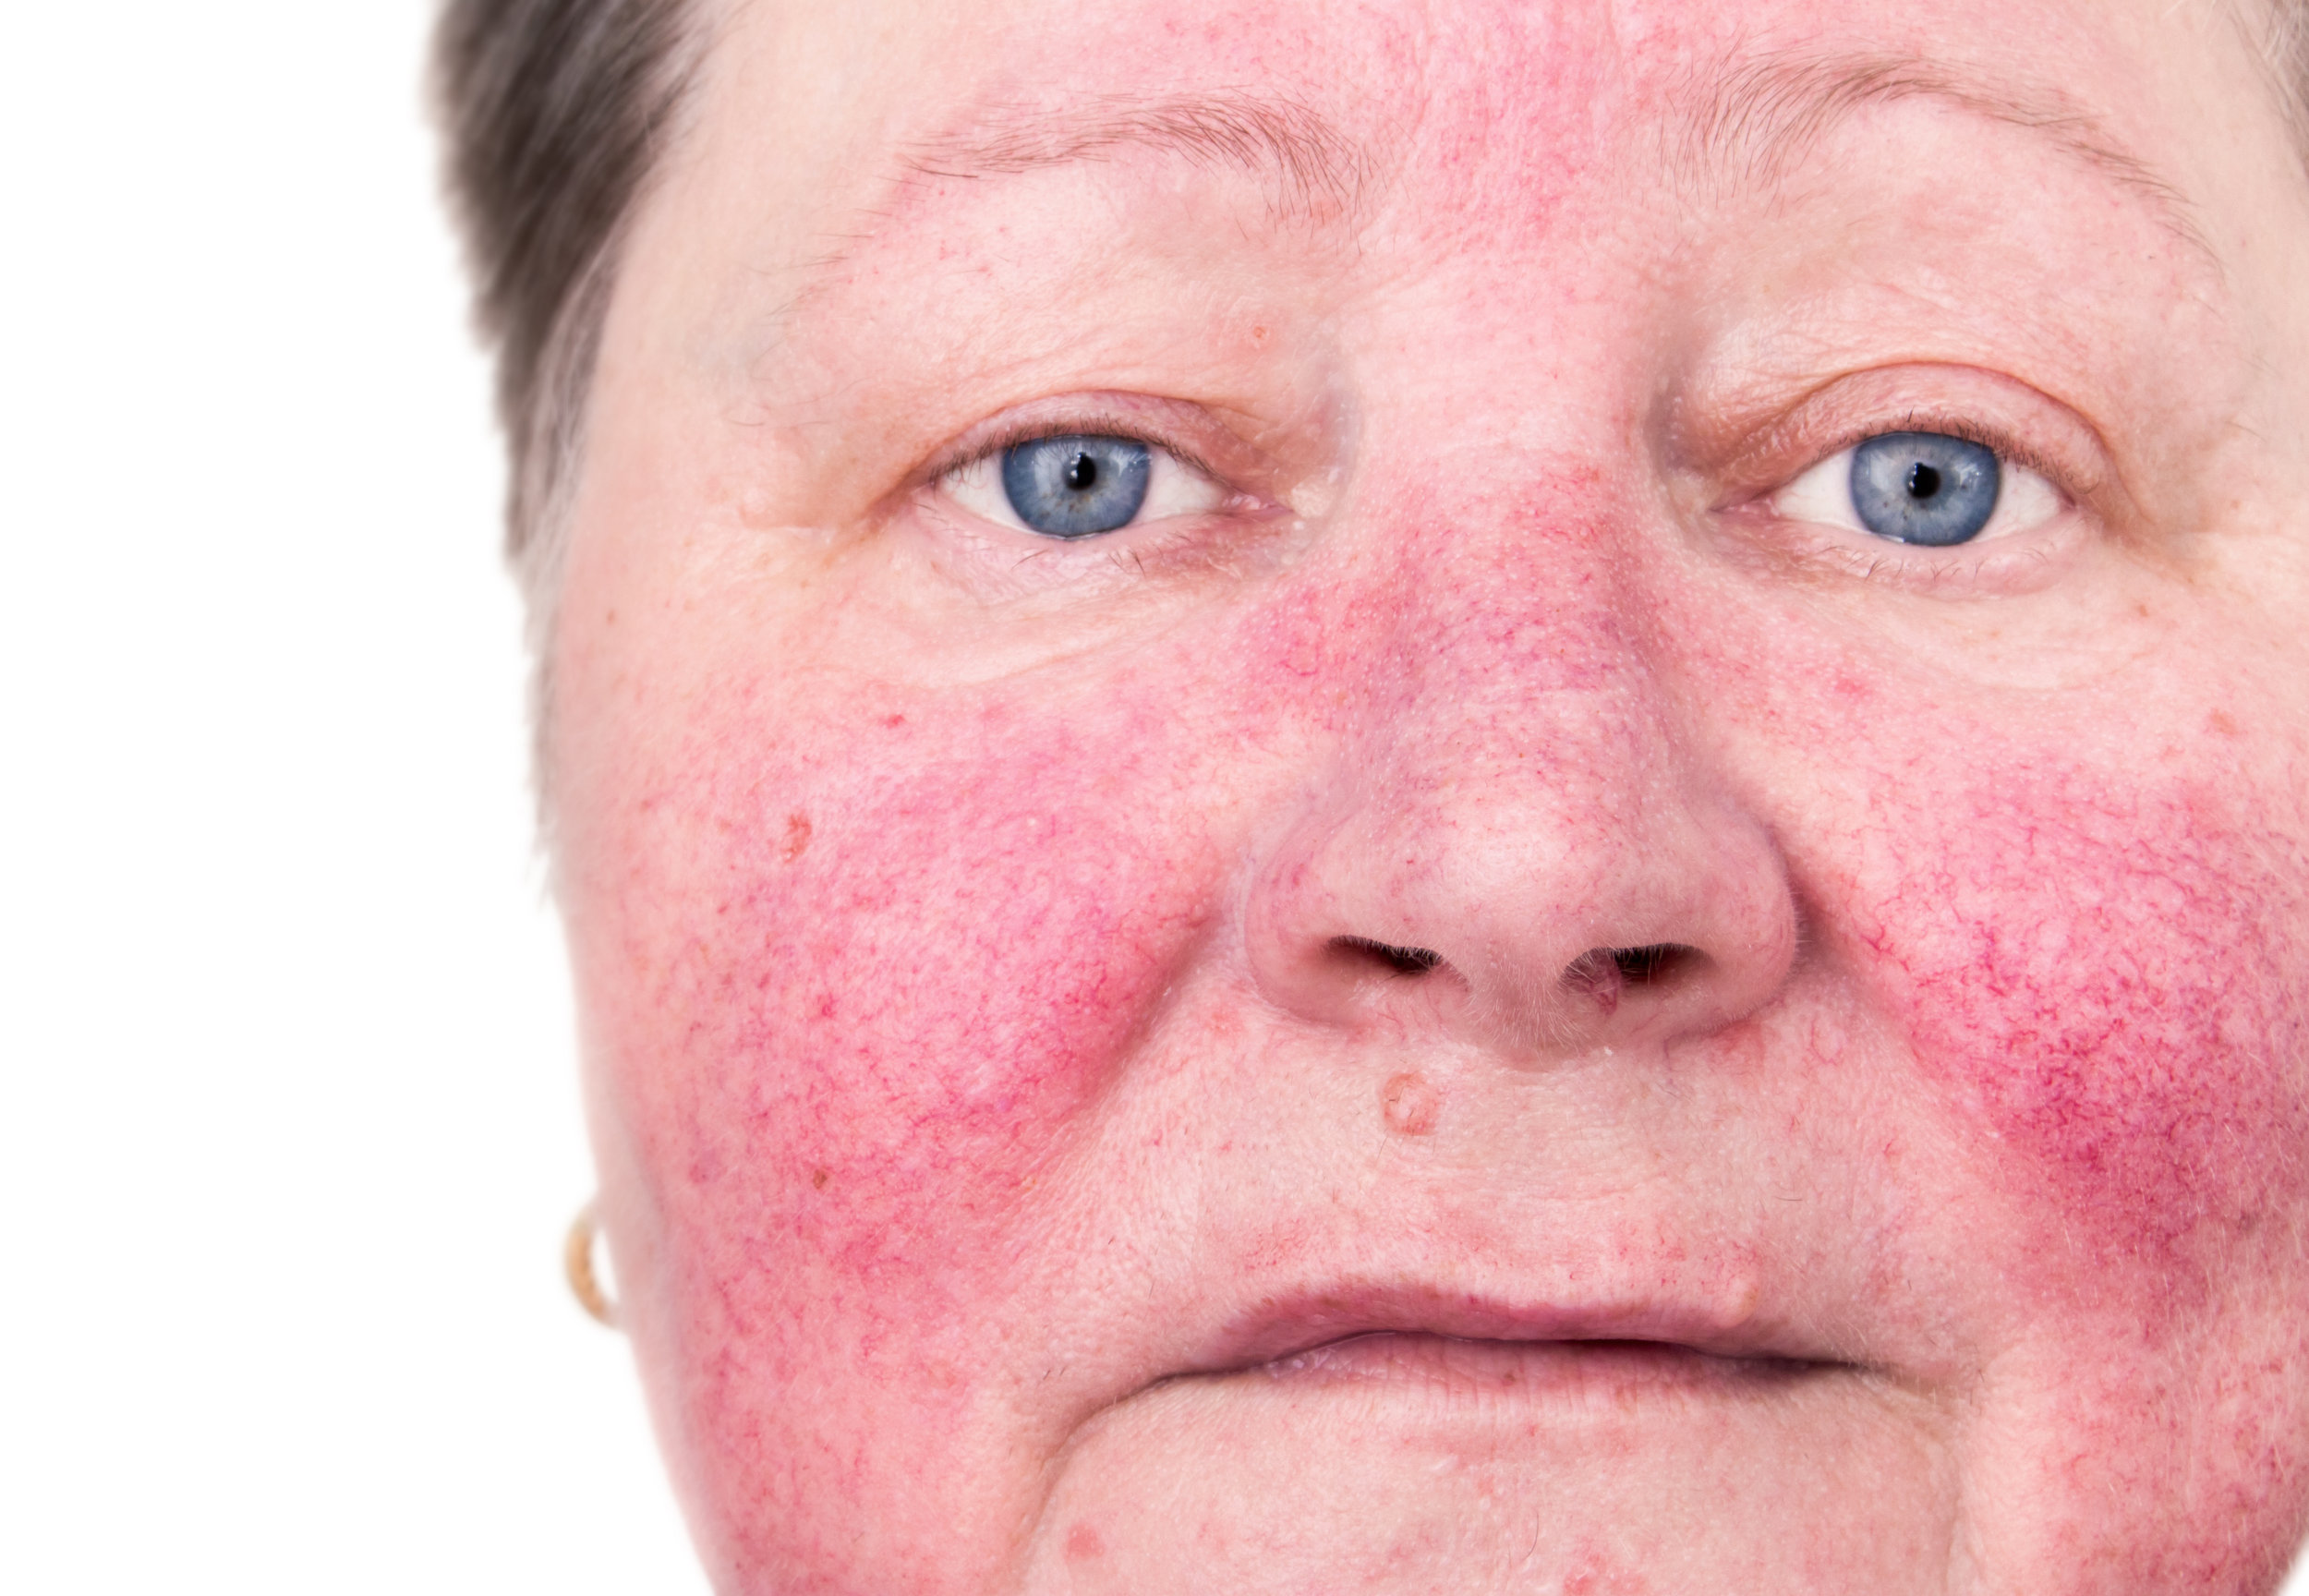 a patient with rosacea